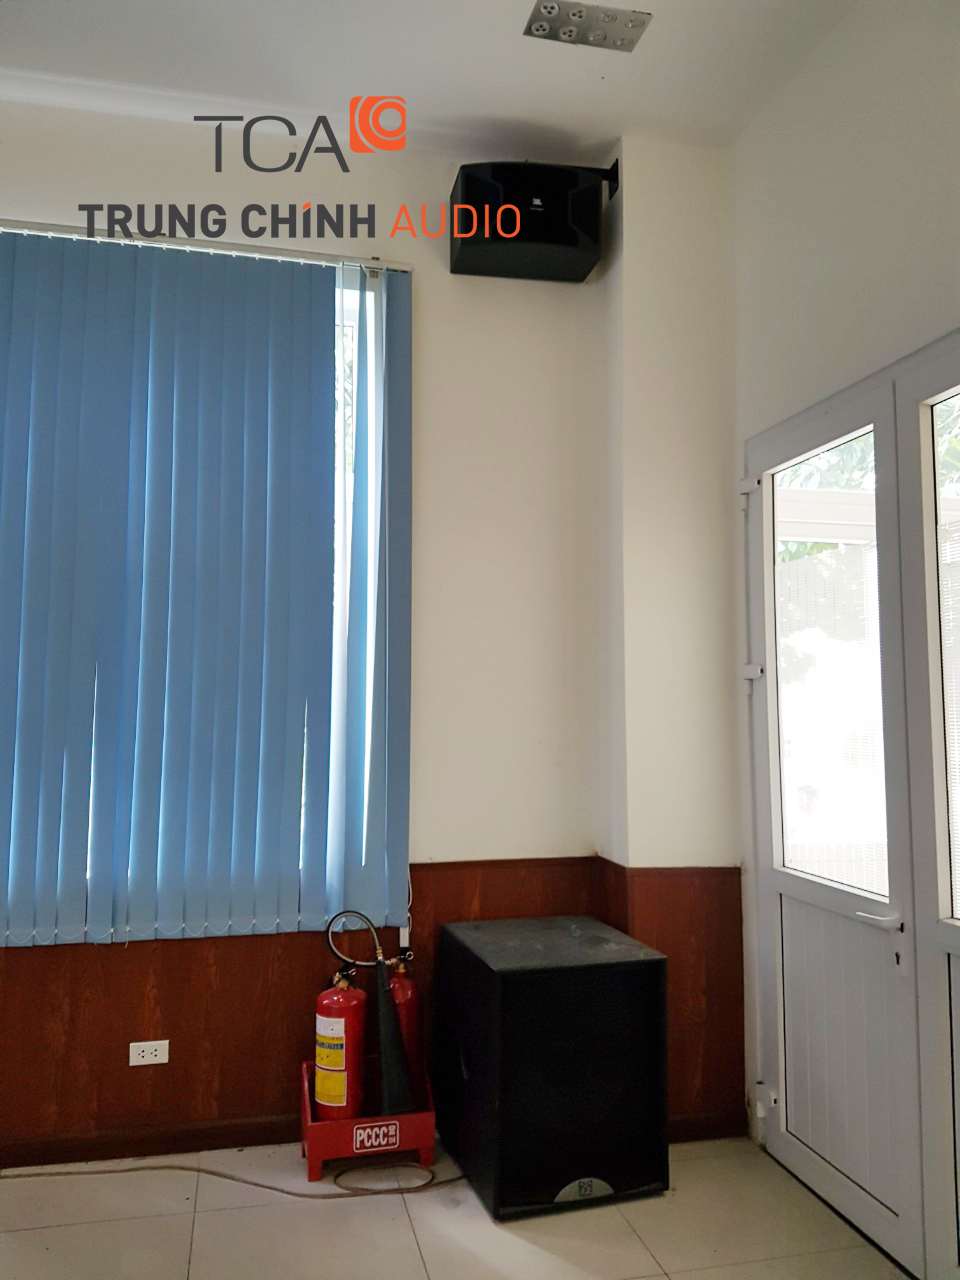 tca-lap-dat-am-thanh-nha-may-nuoc-sach-quan-12-003